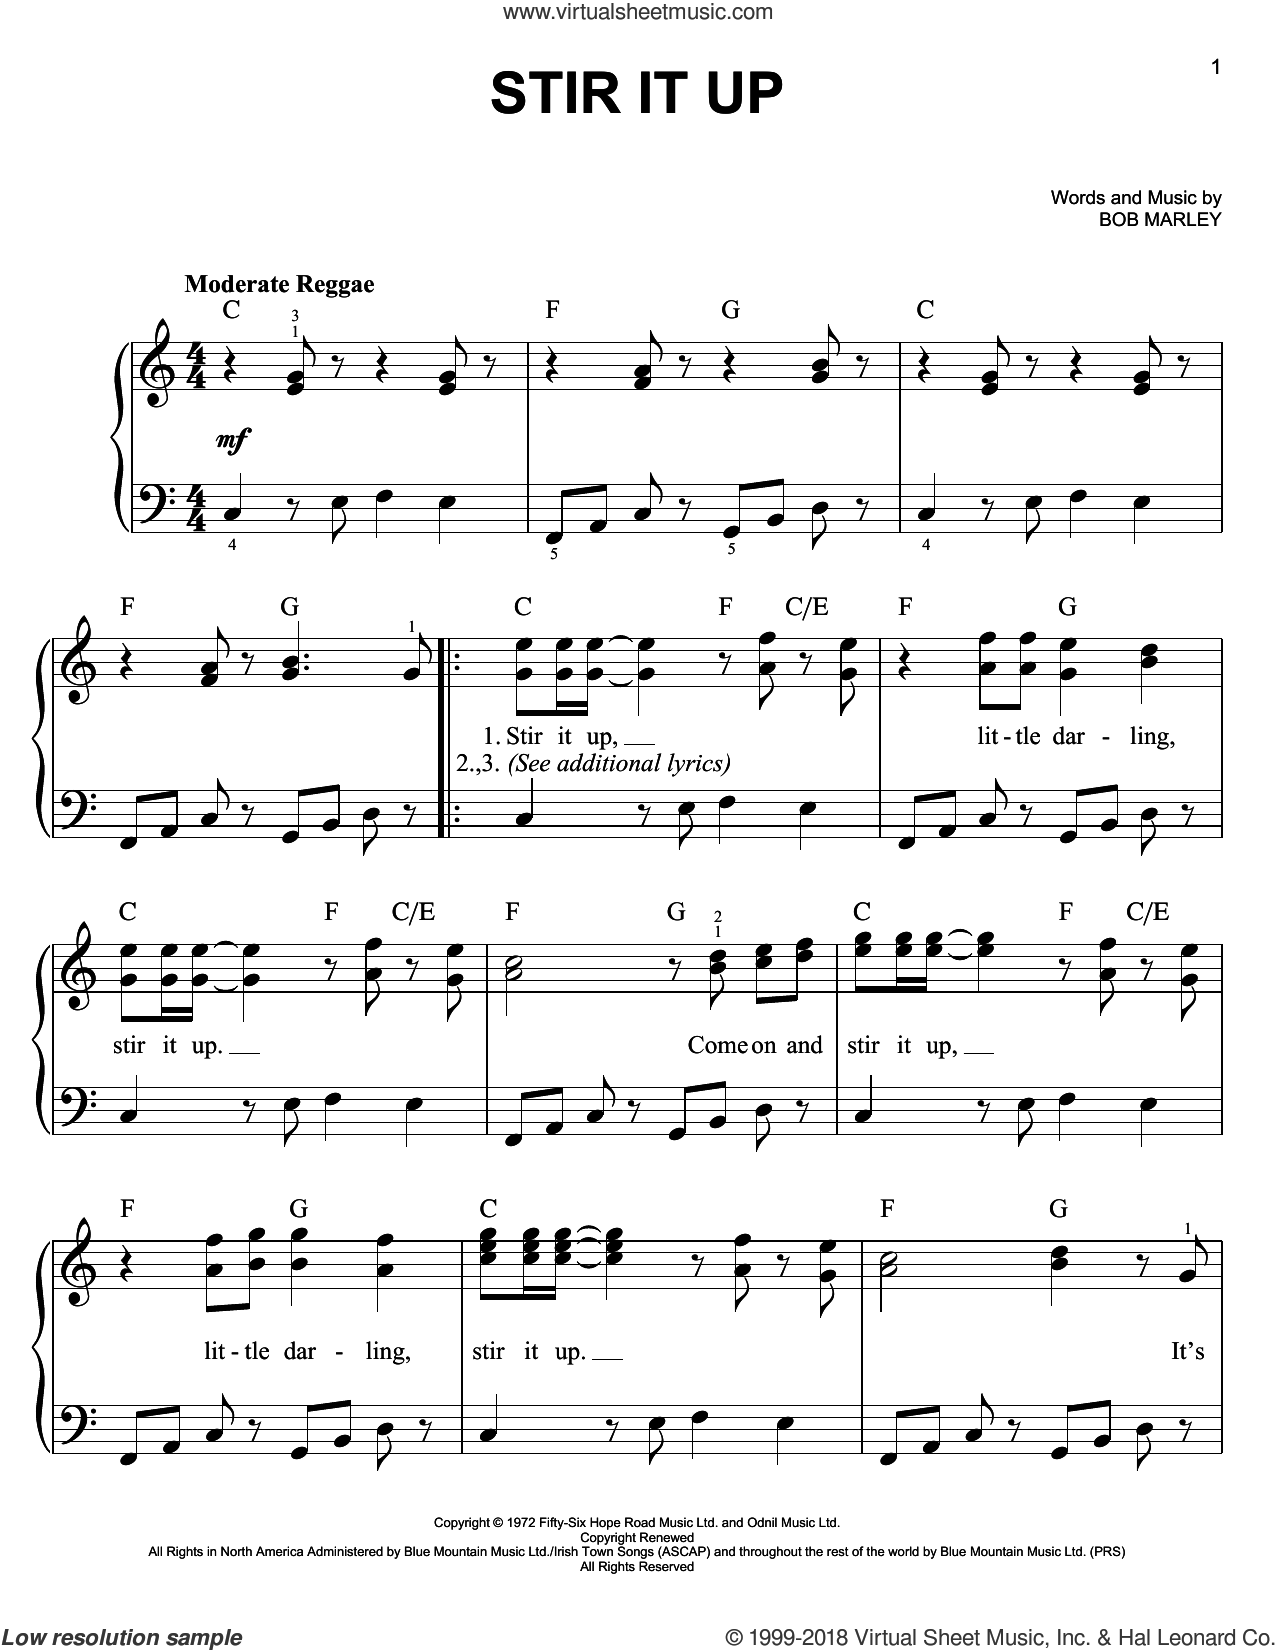 Stir It Up sheet music for piano solo by Bob Marley, easy skill level